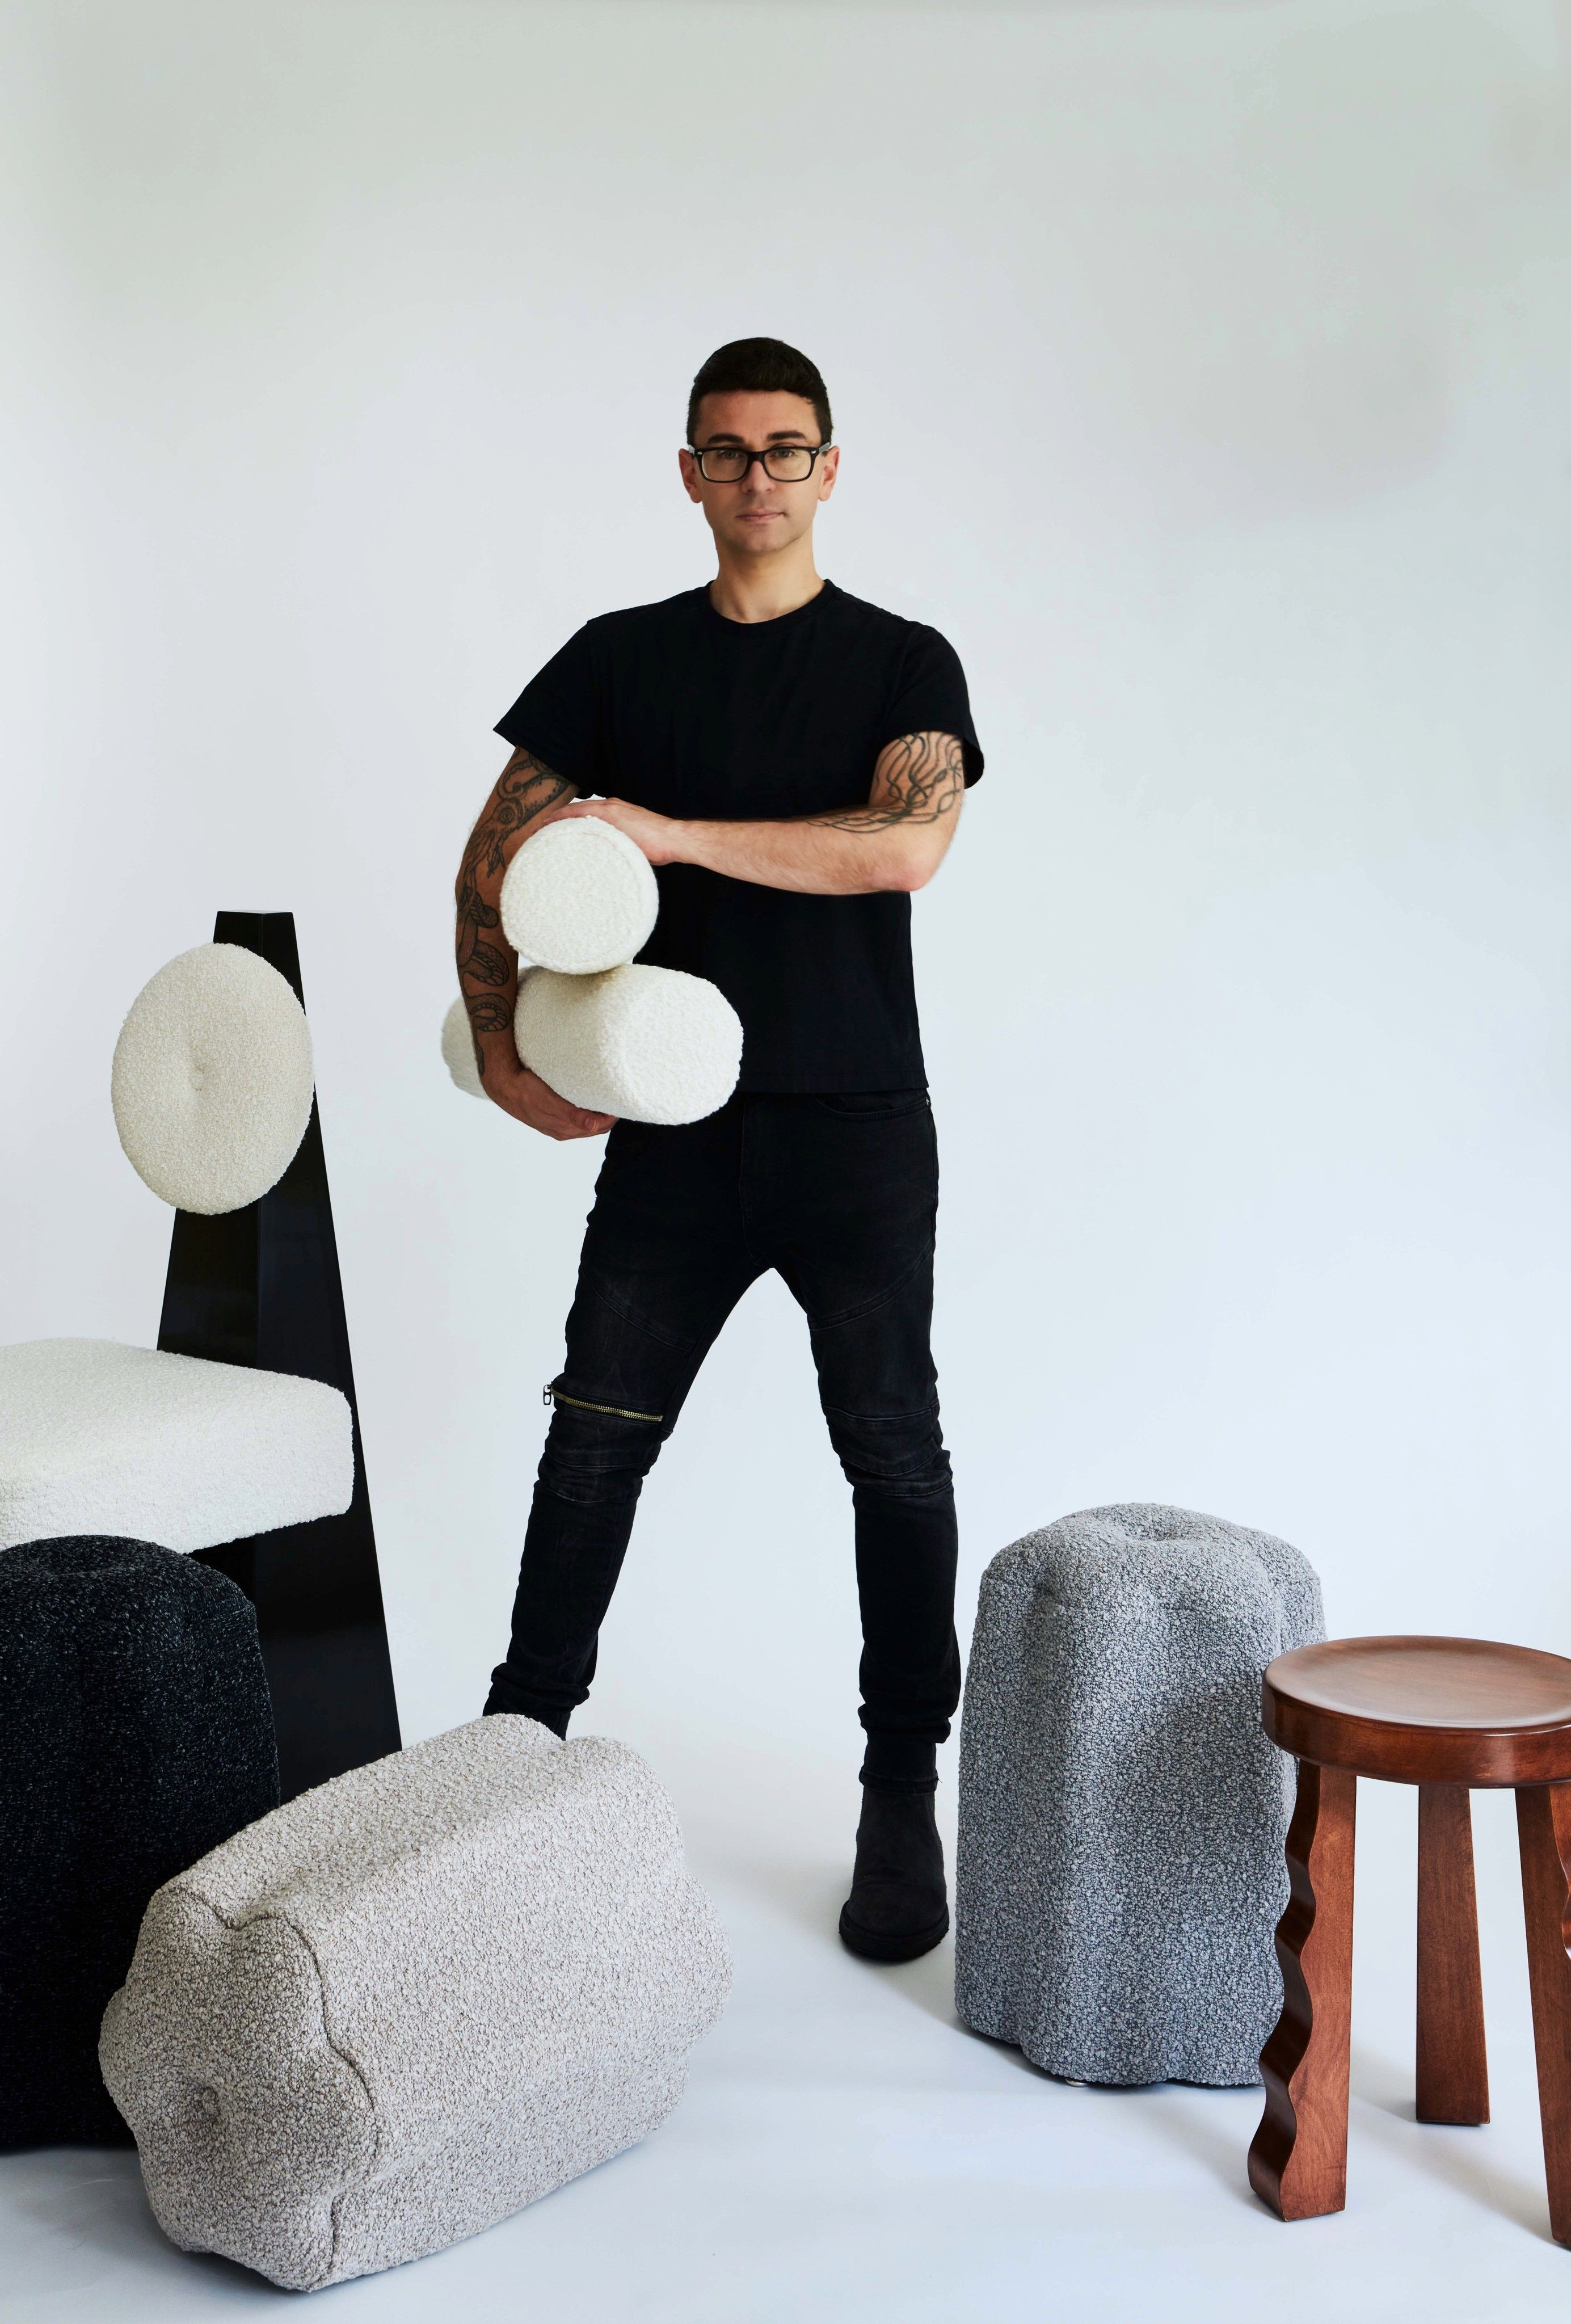 Christian Siriano's First Furntiure Collection Is a New Take on Midcentury Silhouettes